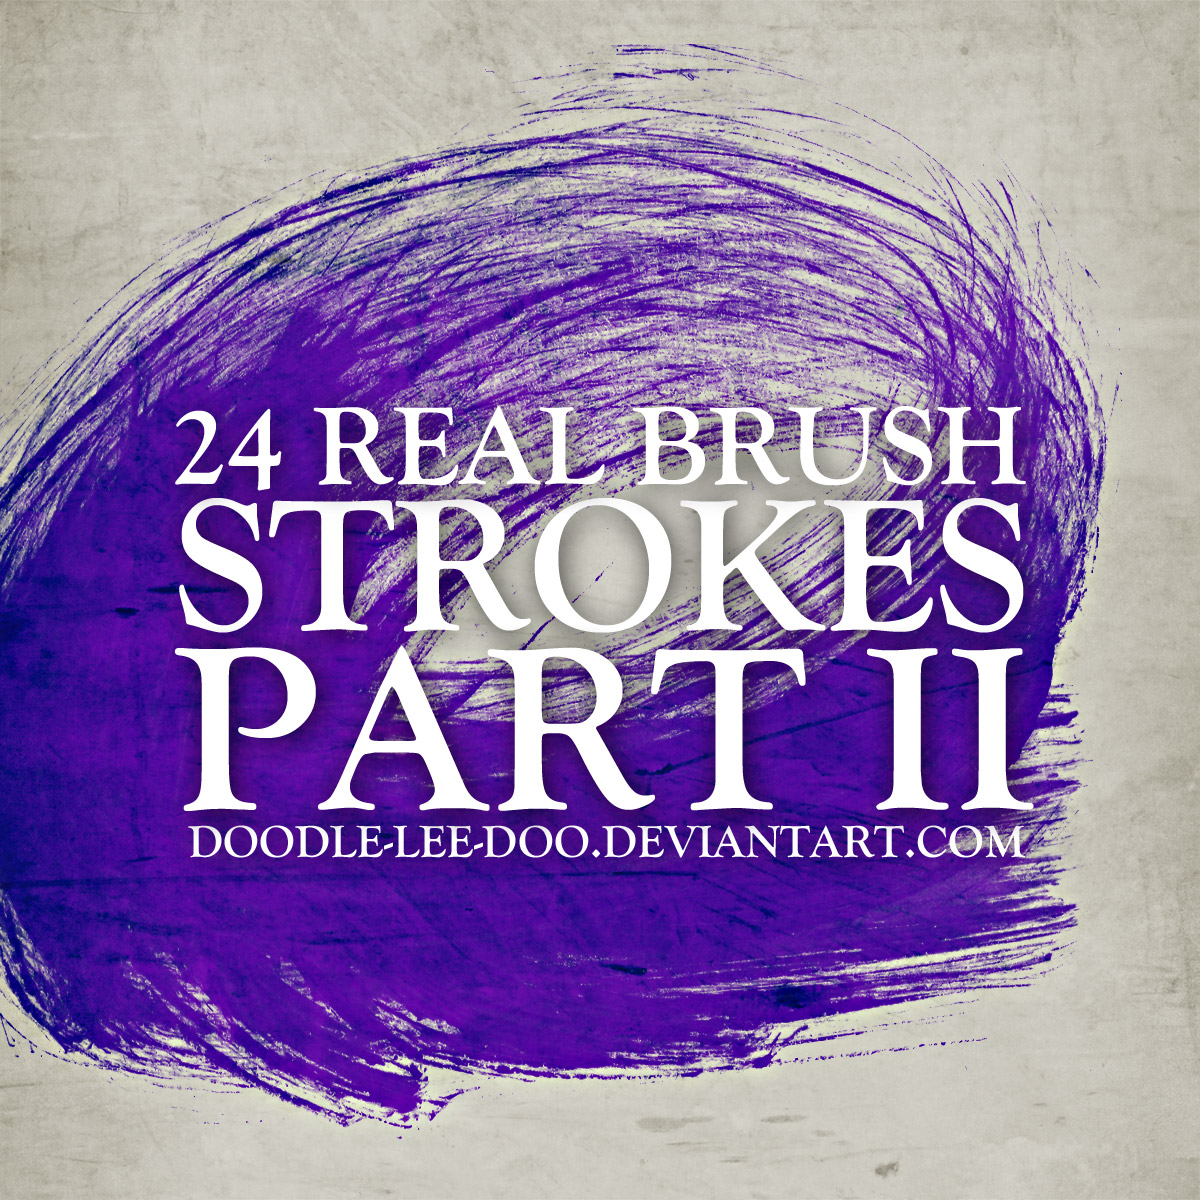 Real brush strokes part II